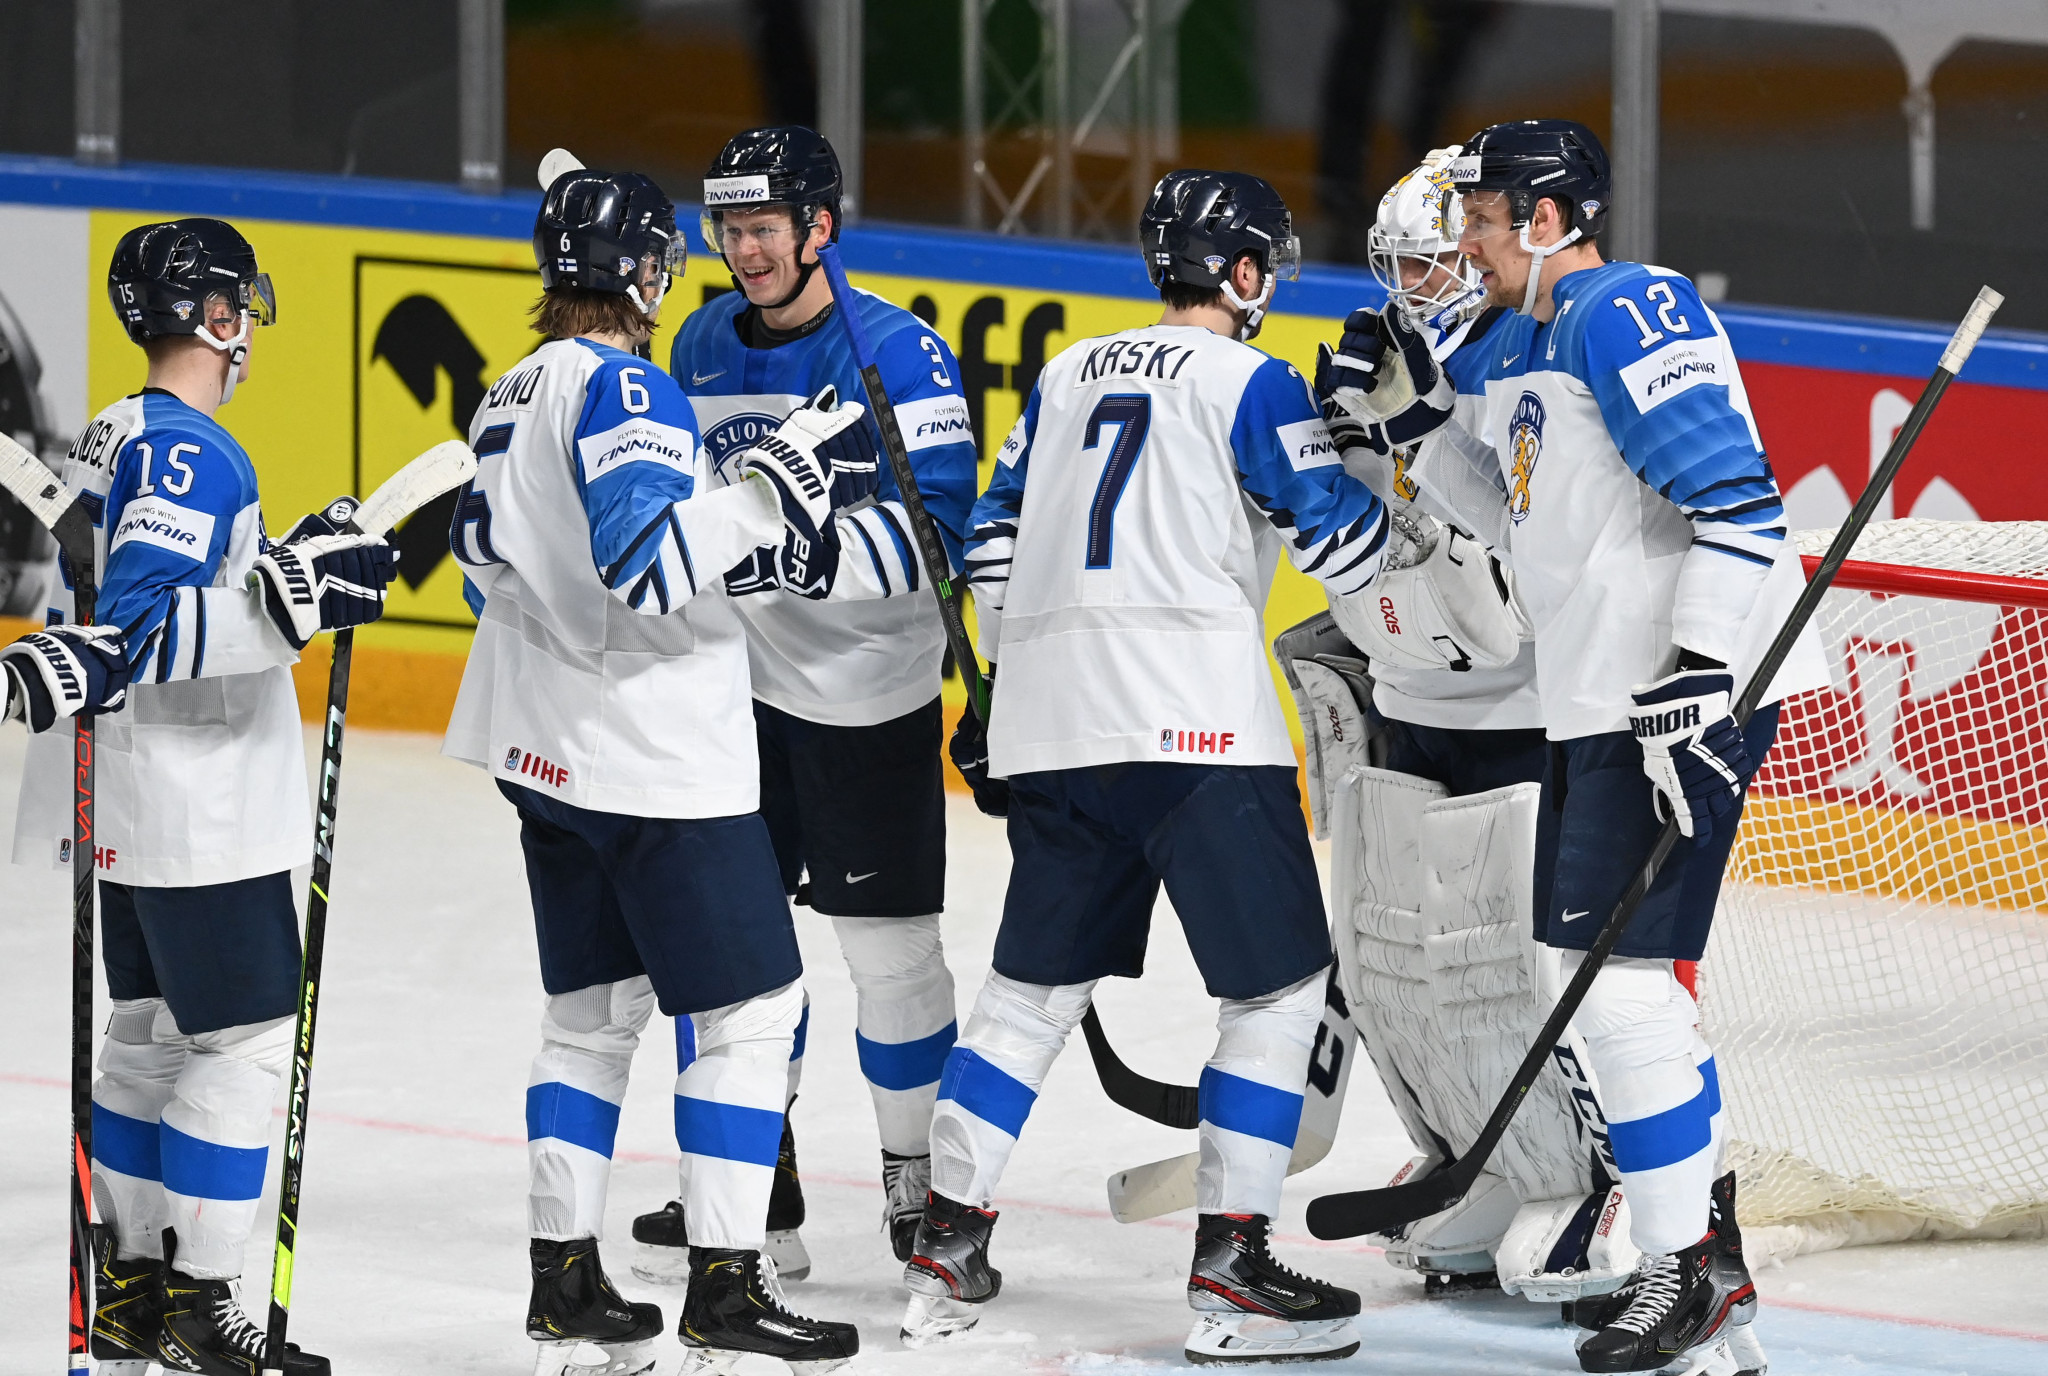 Defending champions Finland top IIHF Men's World Championship group after overtime win